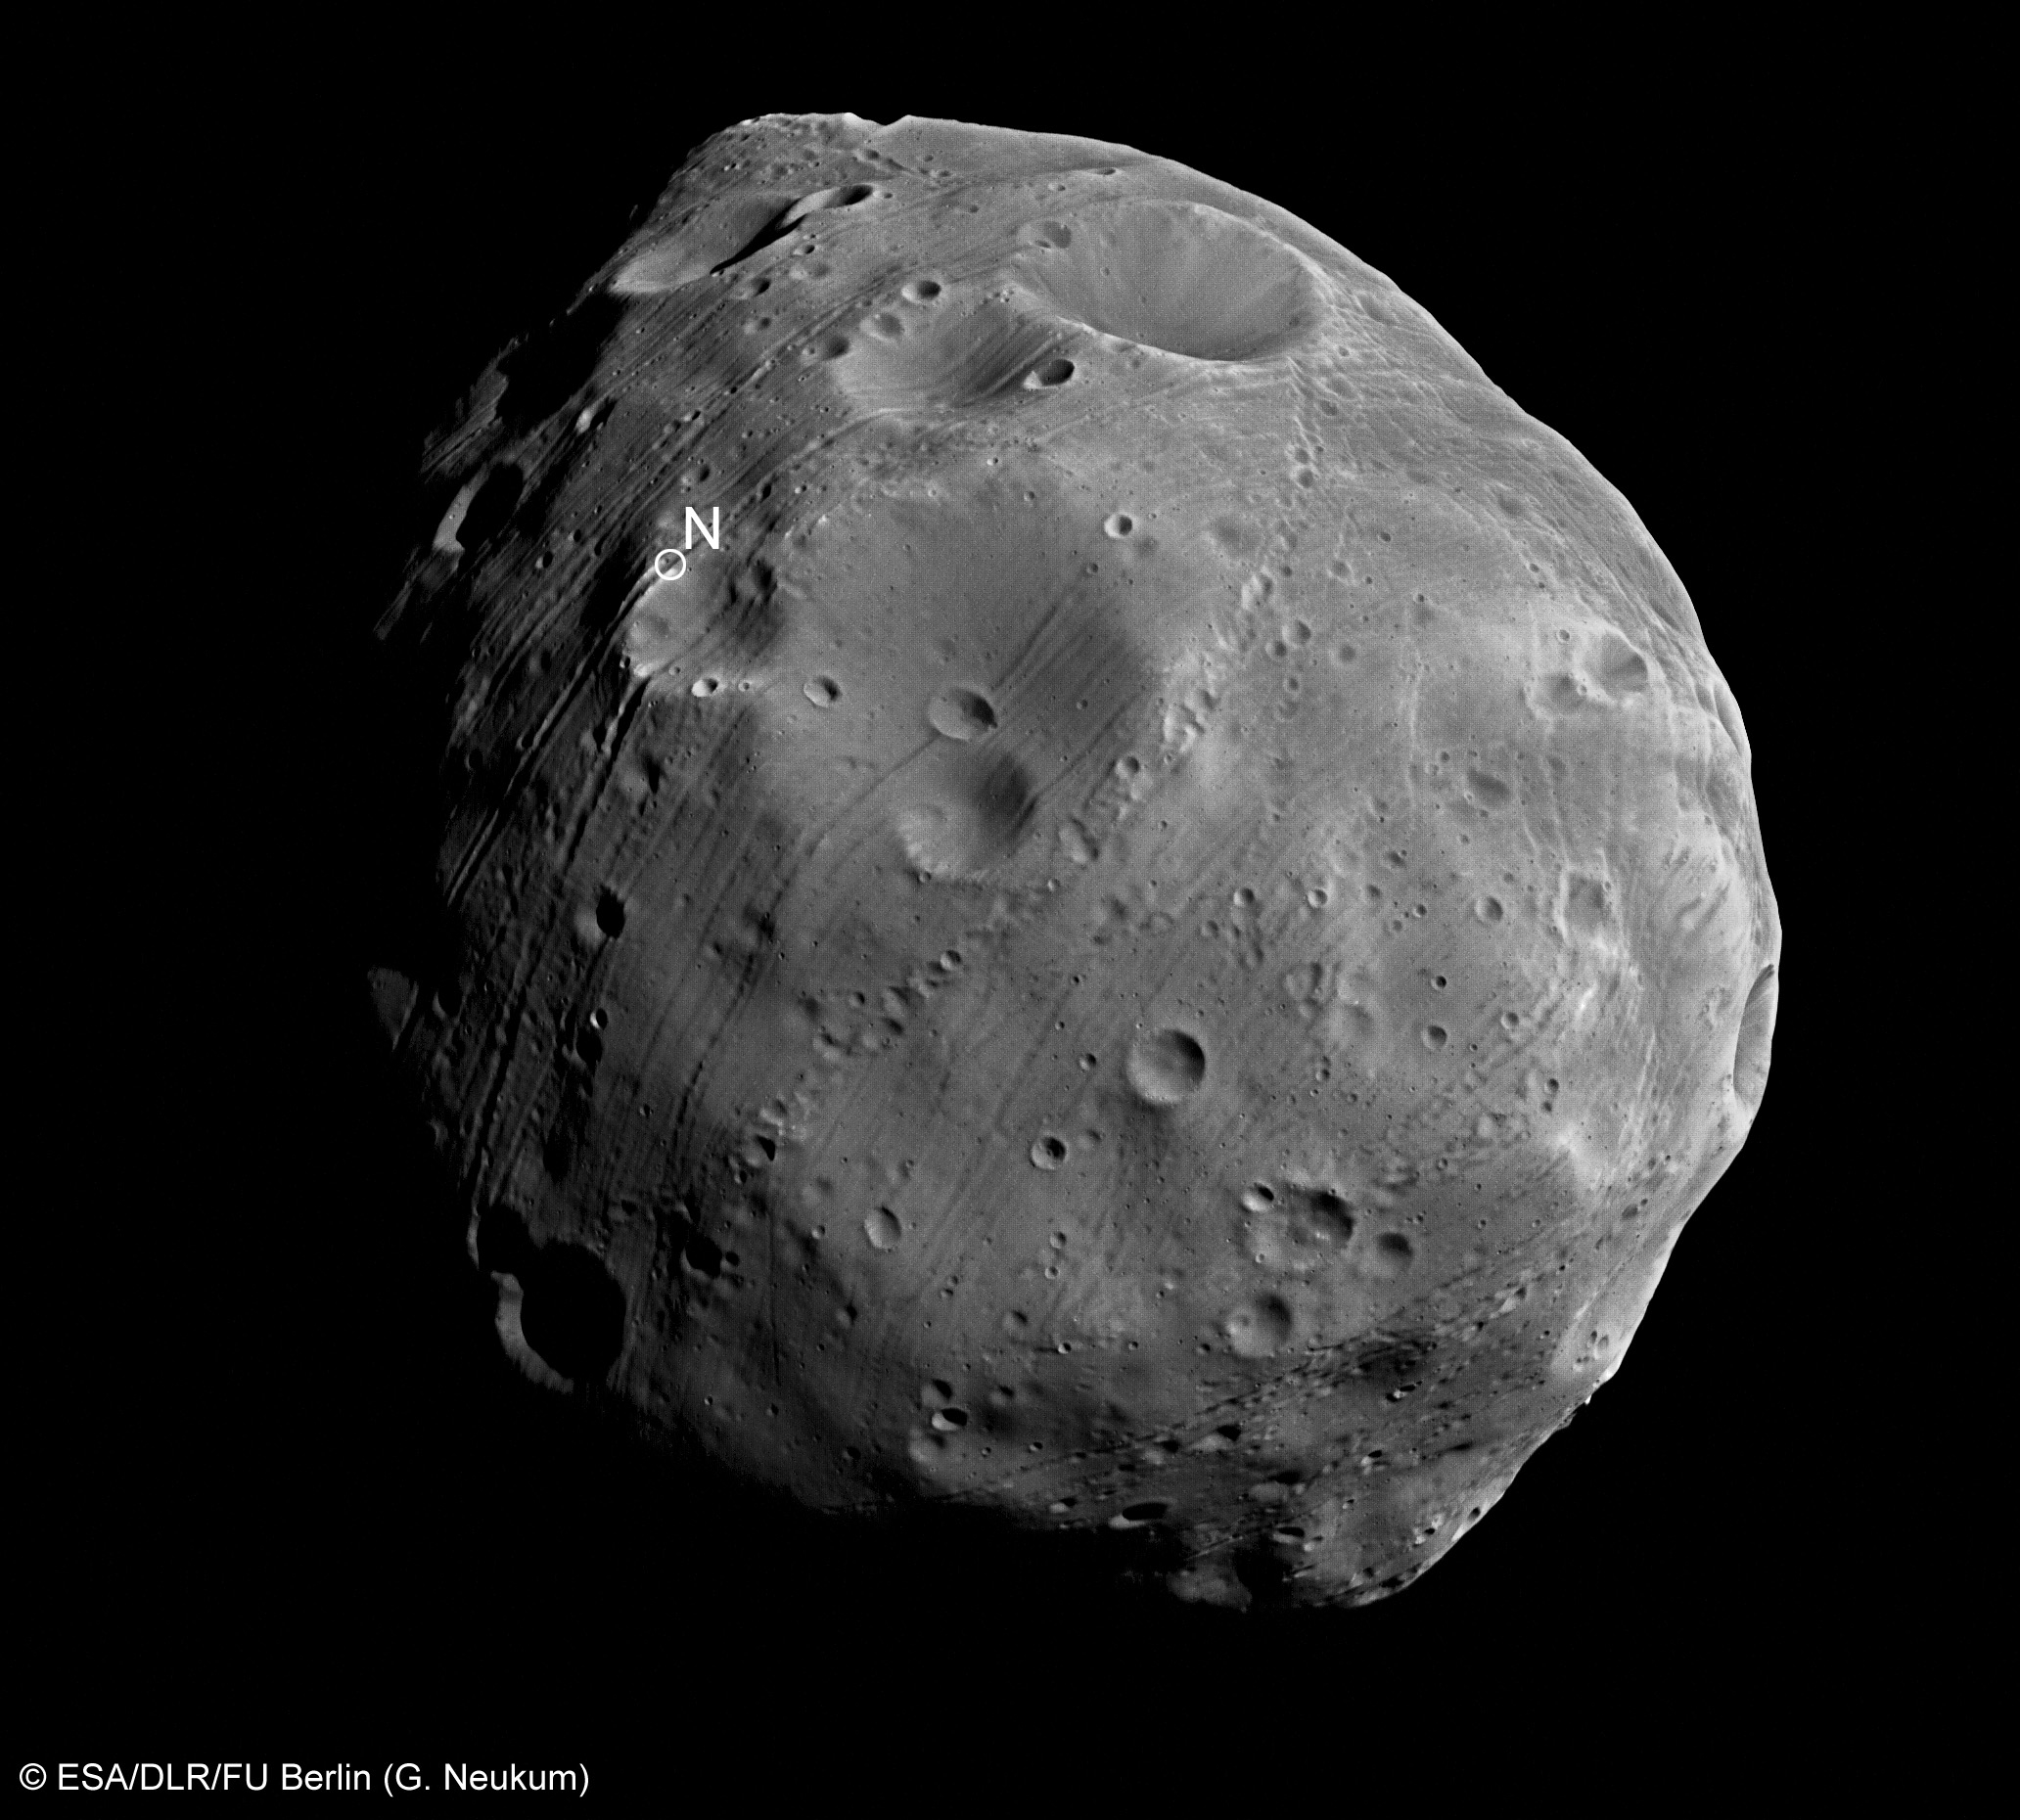 ESA Science & Technology: Martian moons: Phobos